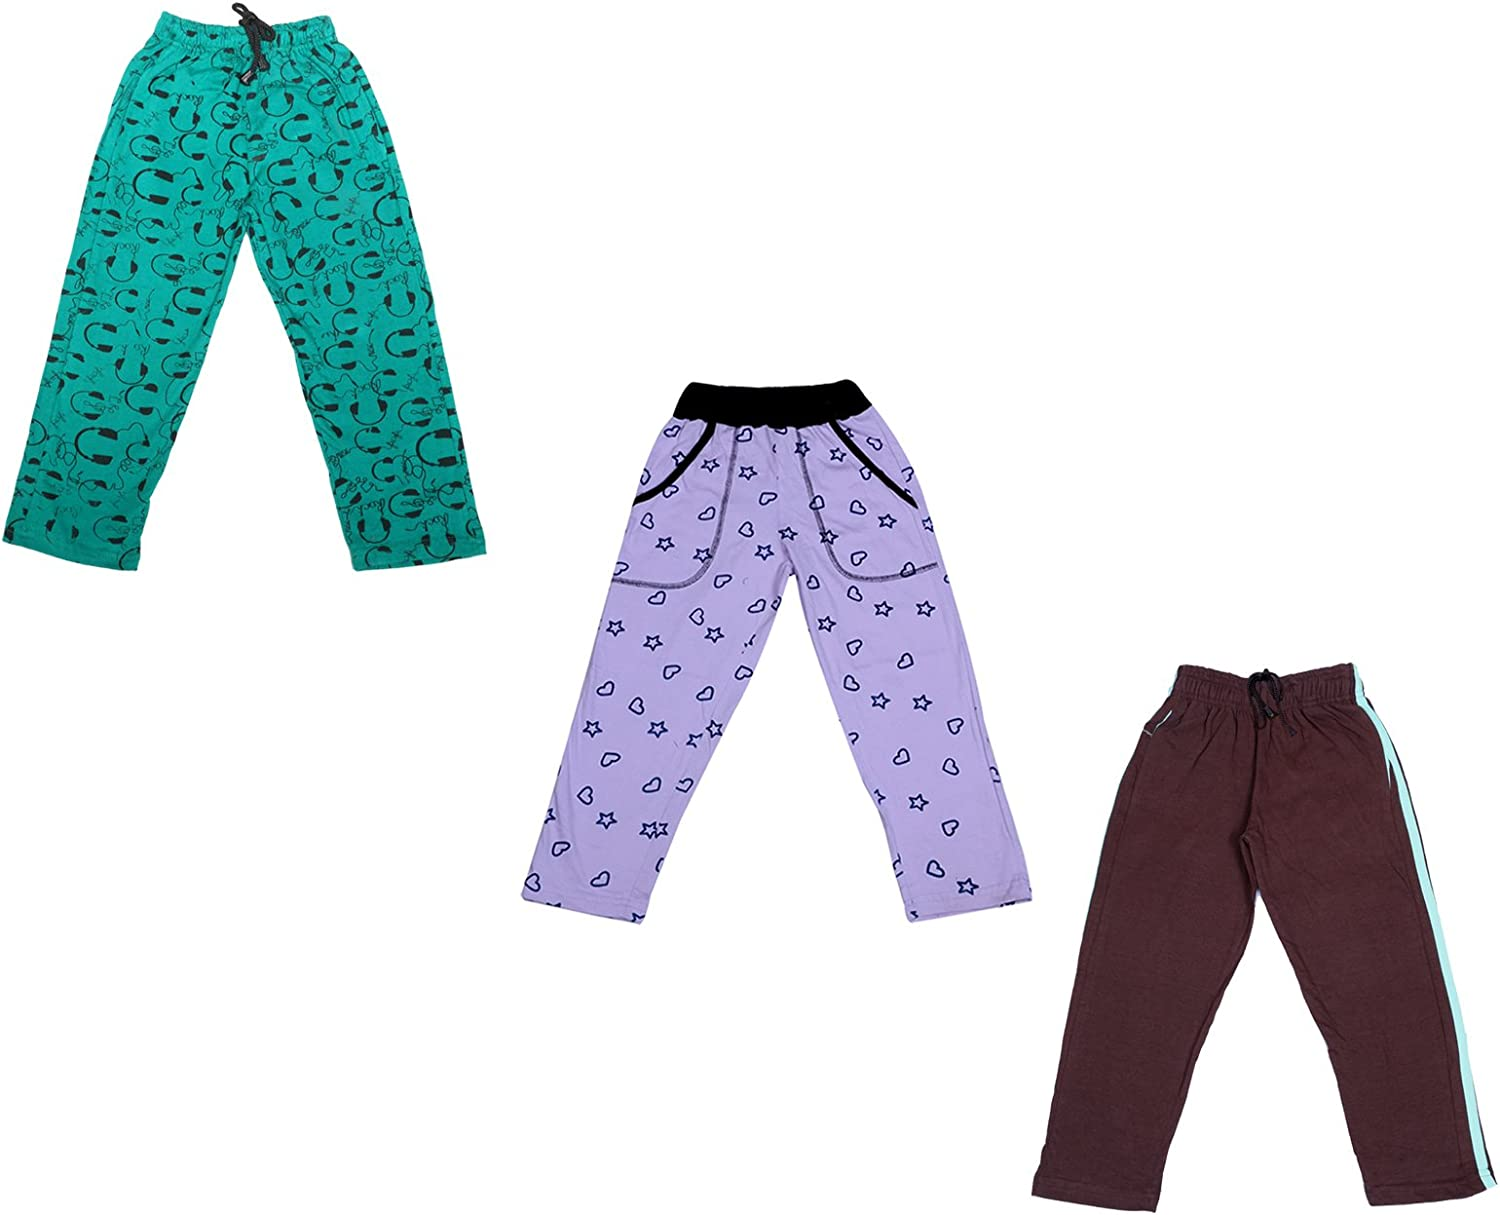 Pack Of 3 Indistar Boys Premium Cotton Full Length Lower//Track Pants//Pyjamas With 2 Open Pockets